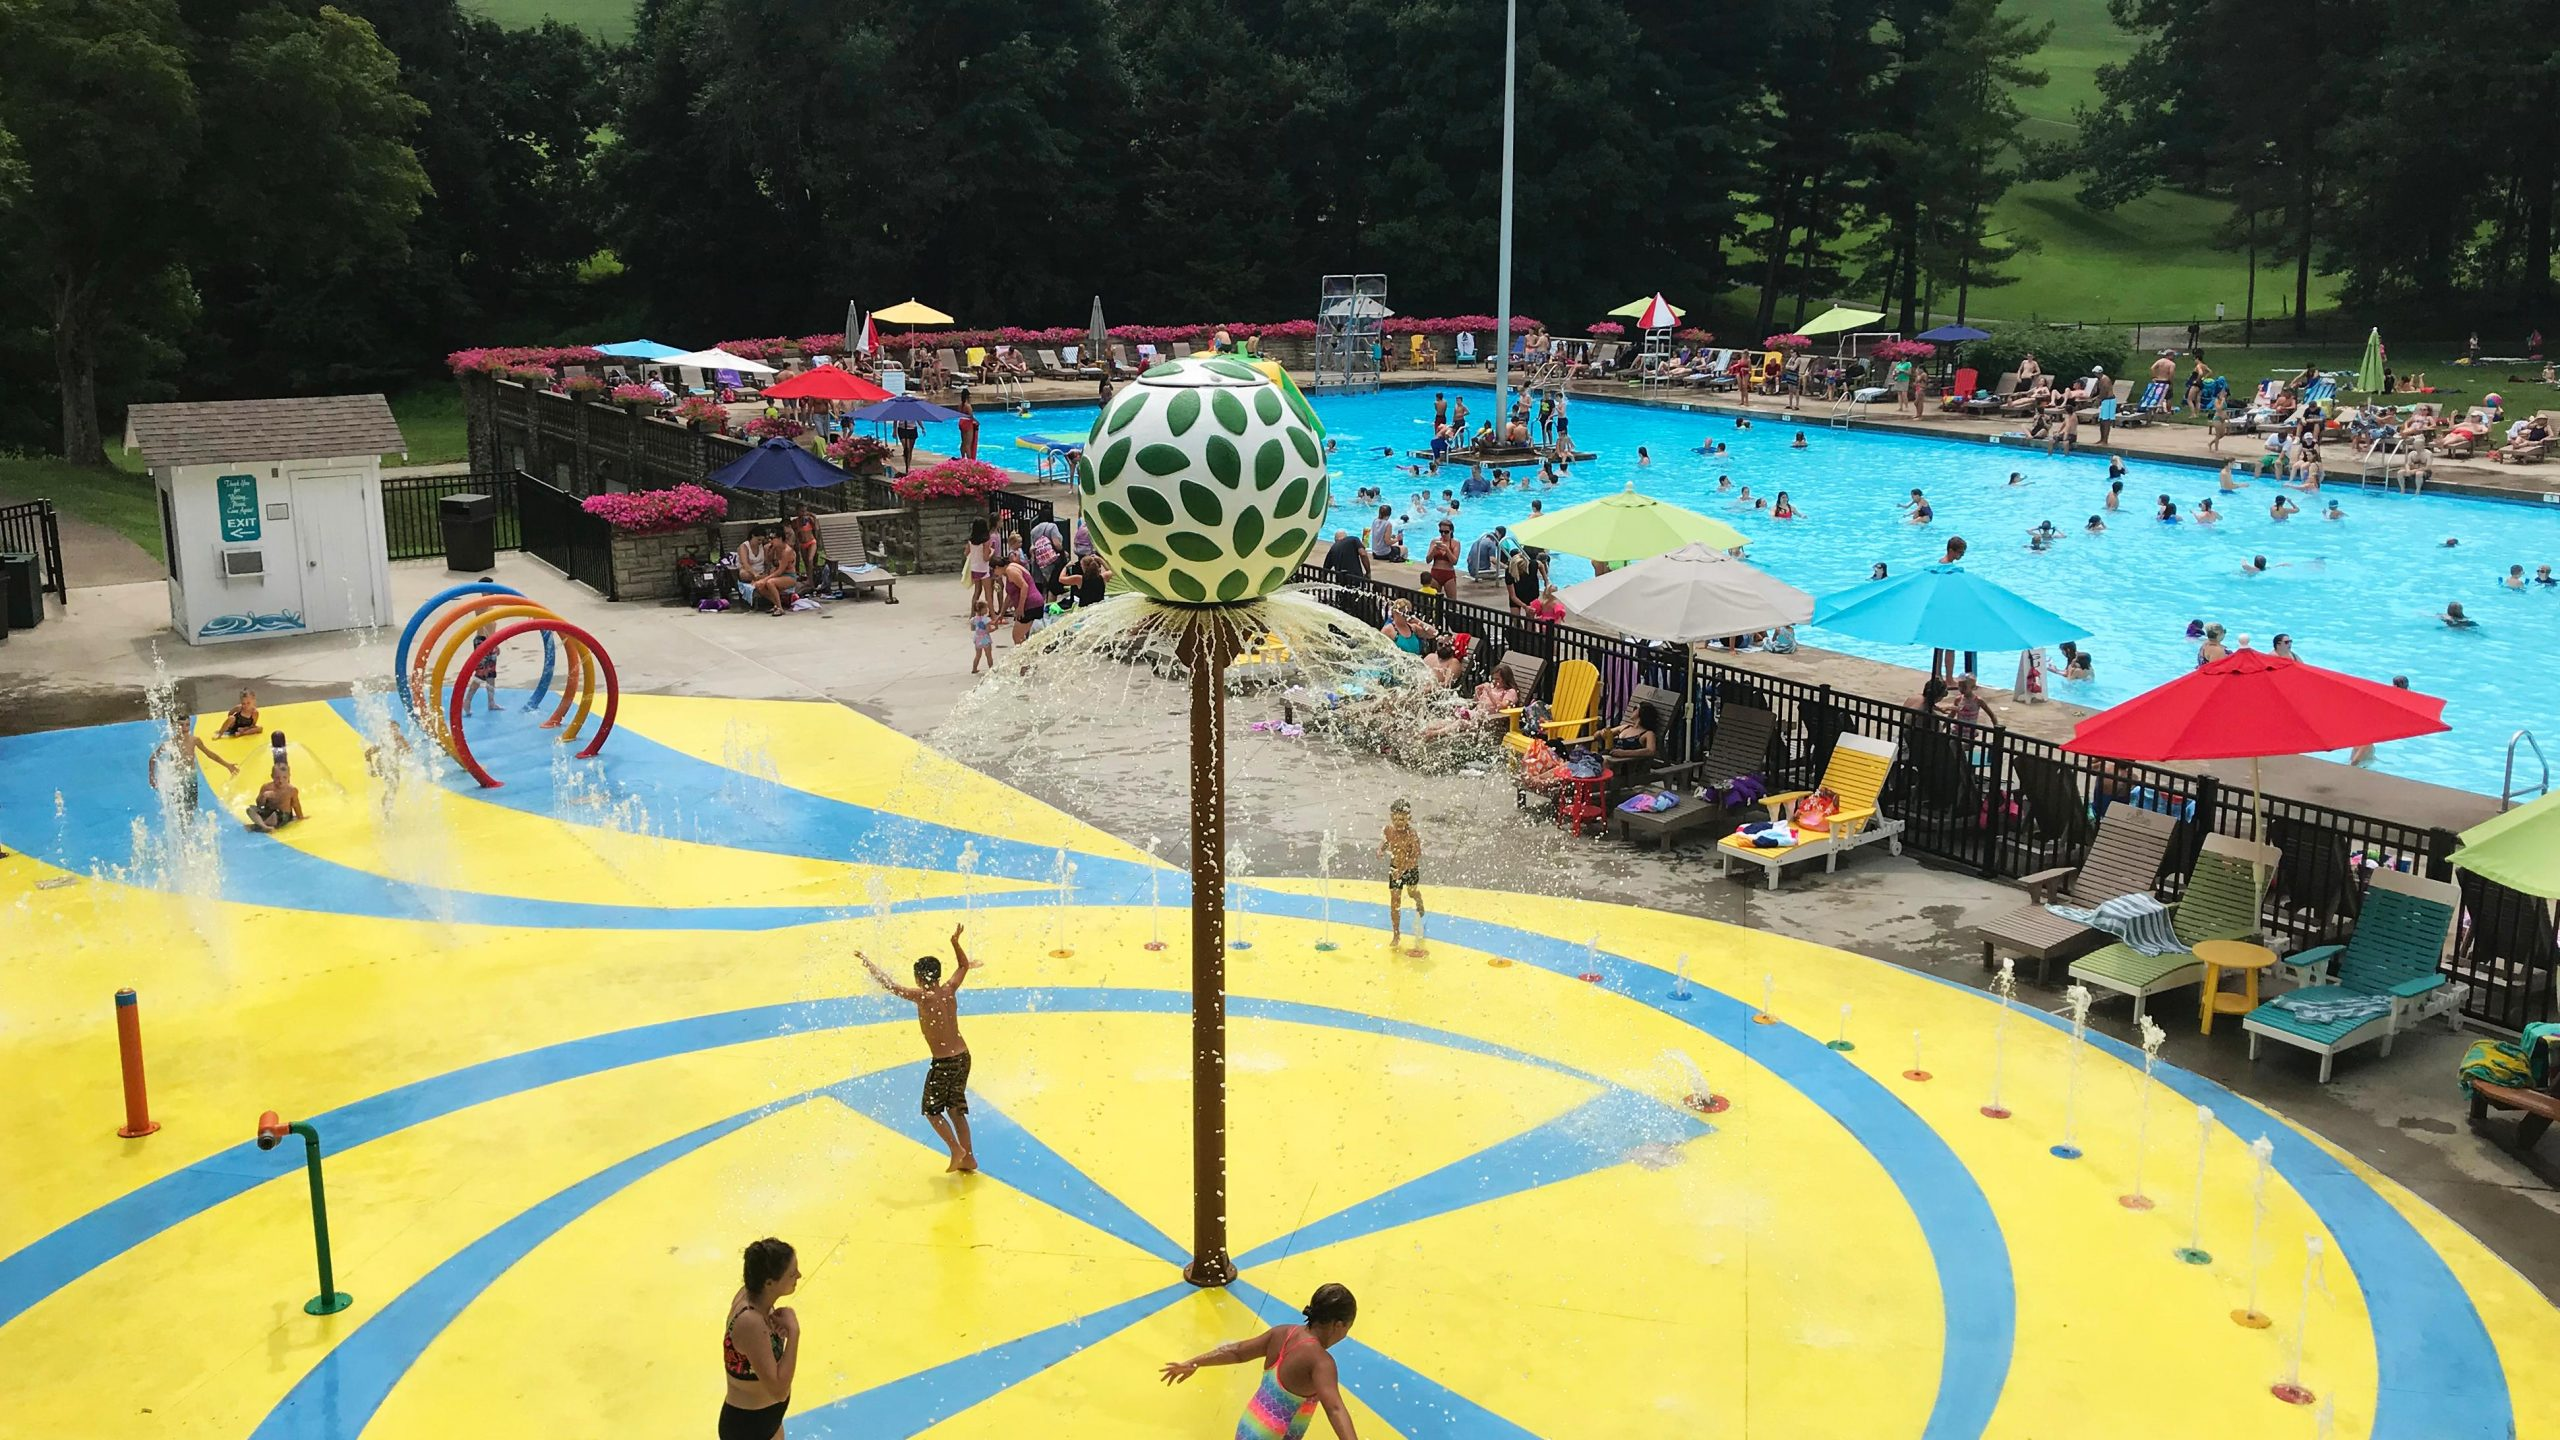 Crispin Center Outdoor Pool photo